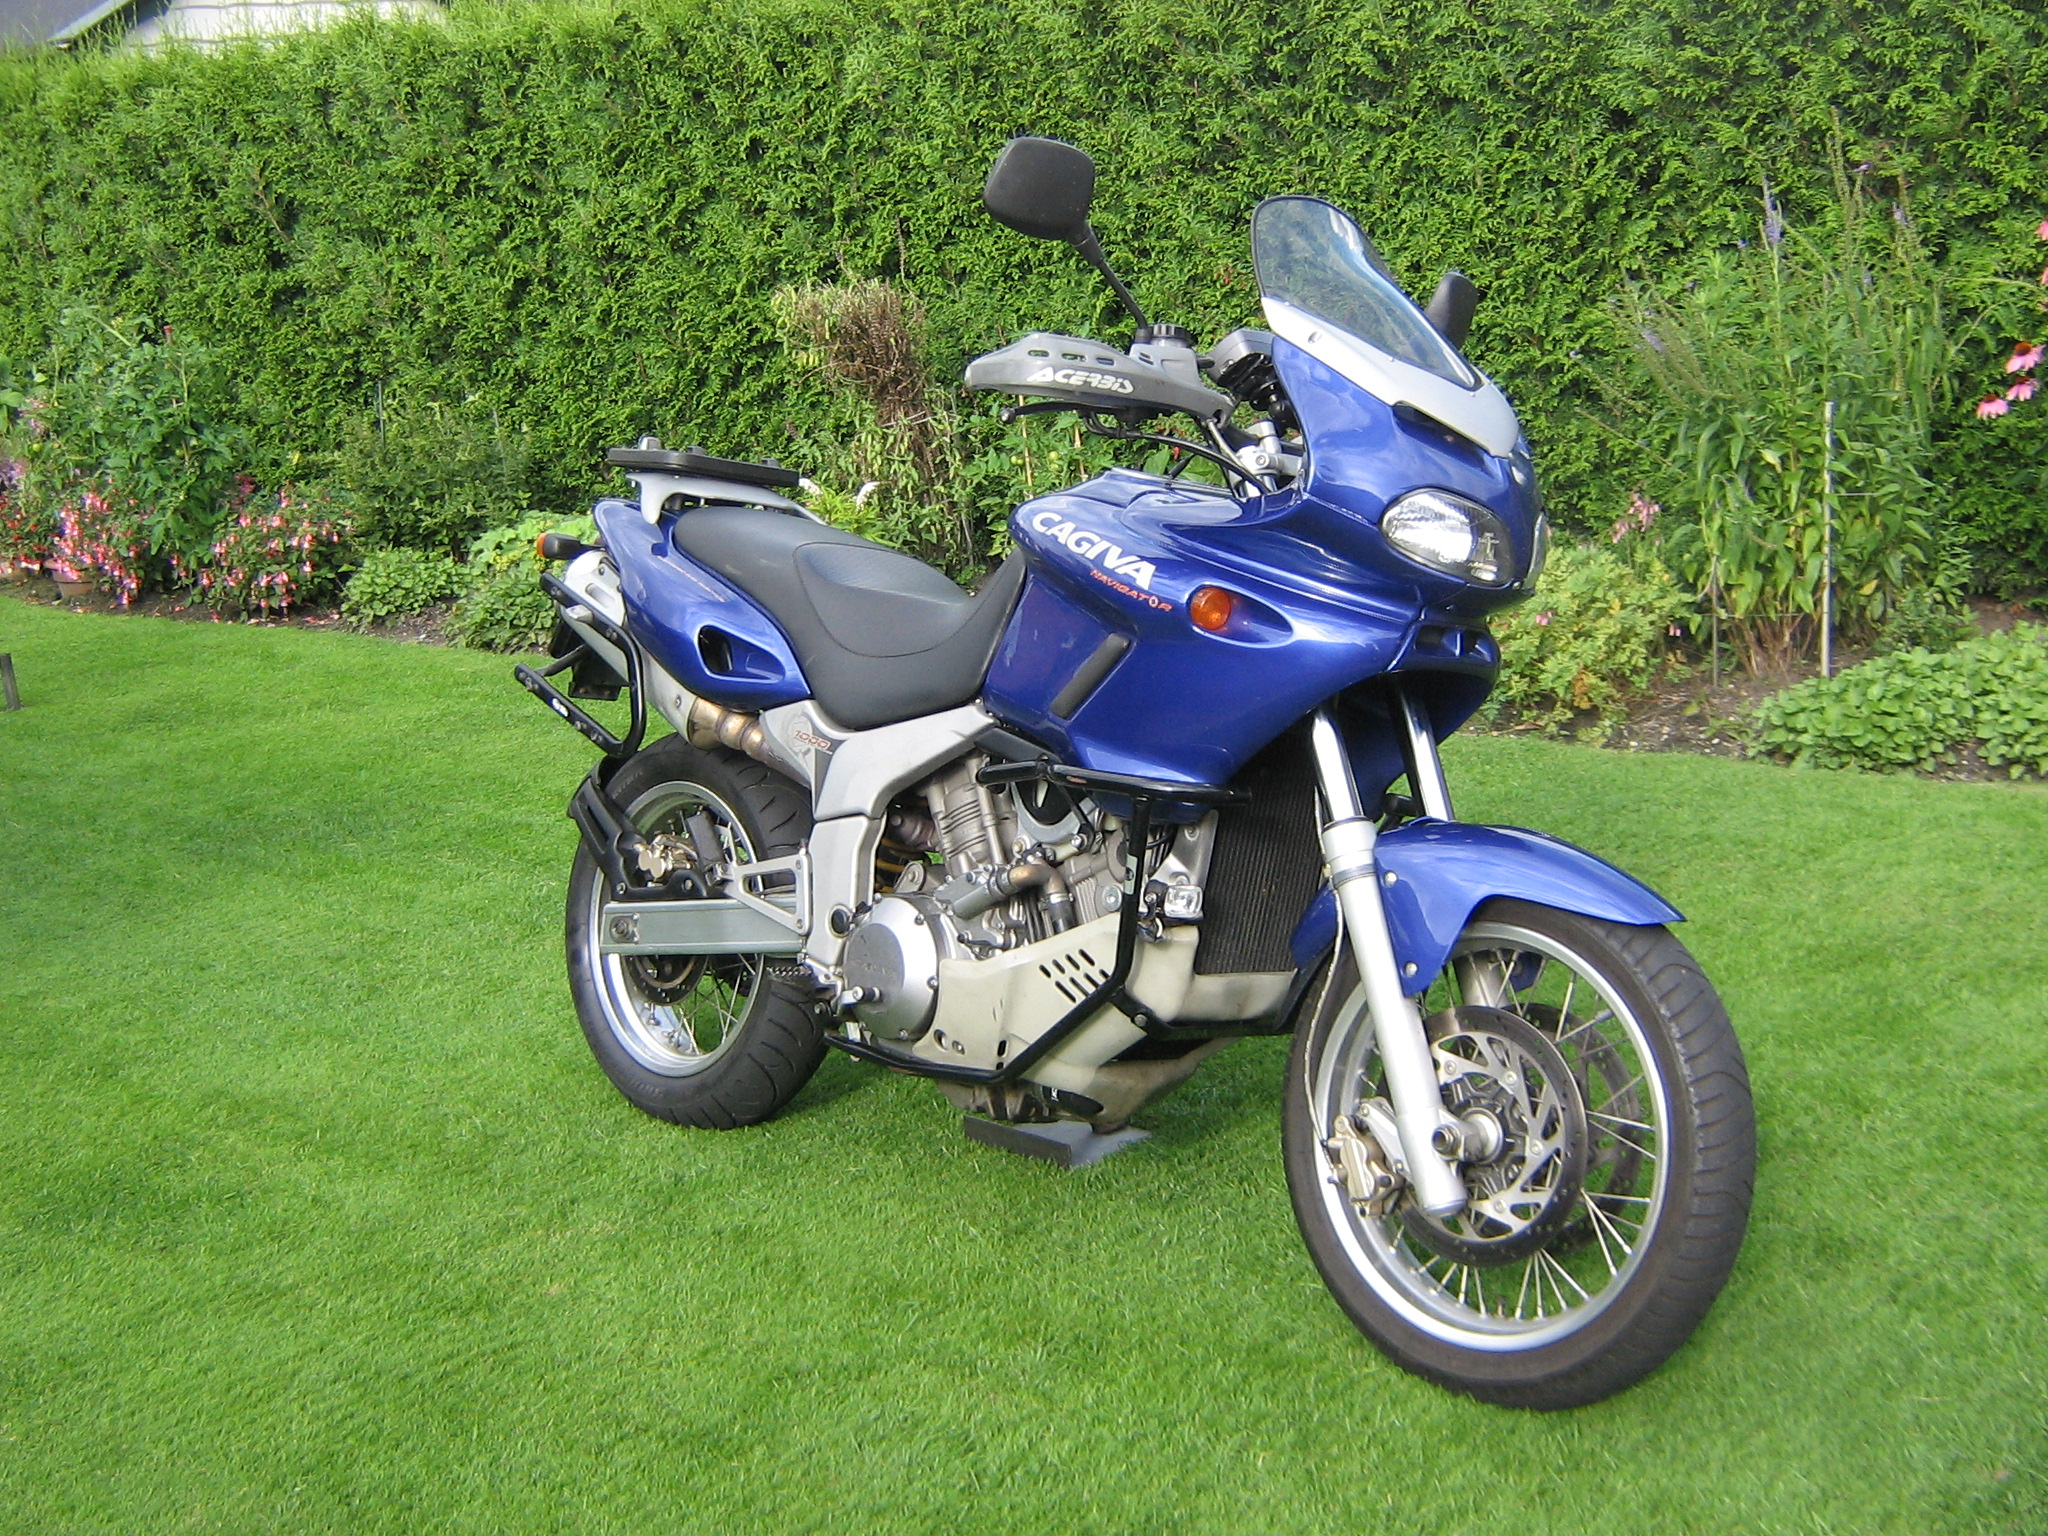 Cagiva Navigator 1000 2001 images #67692